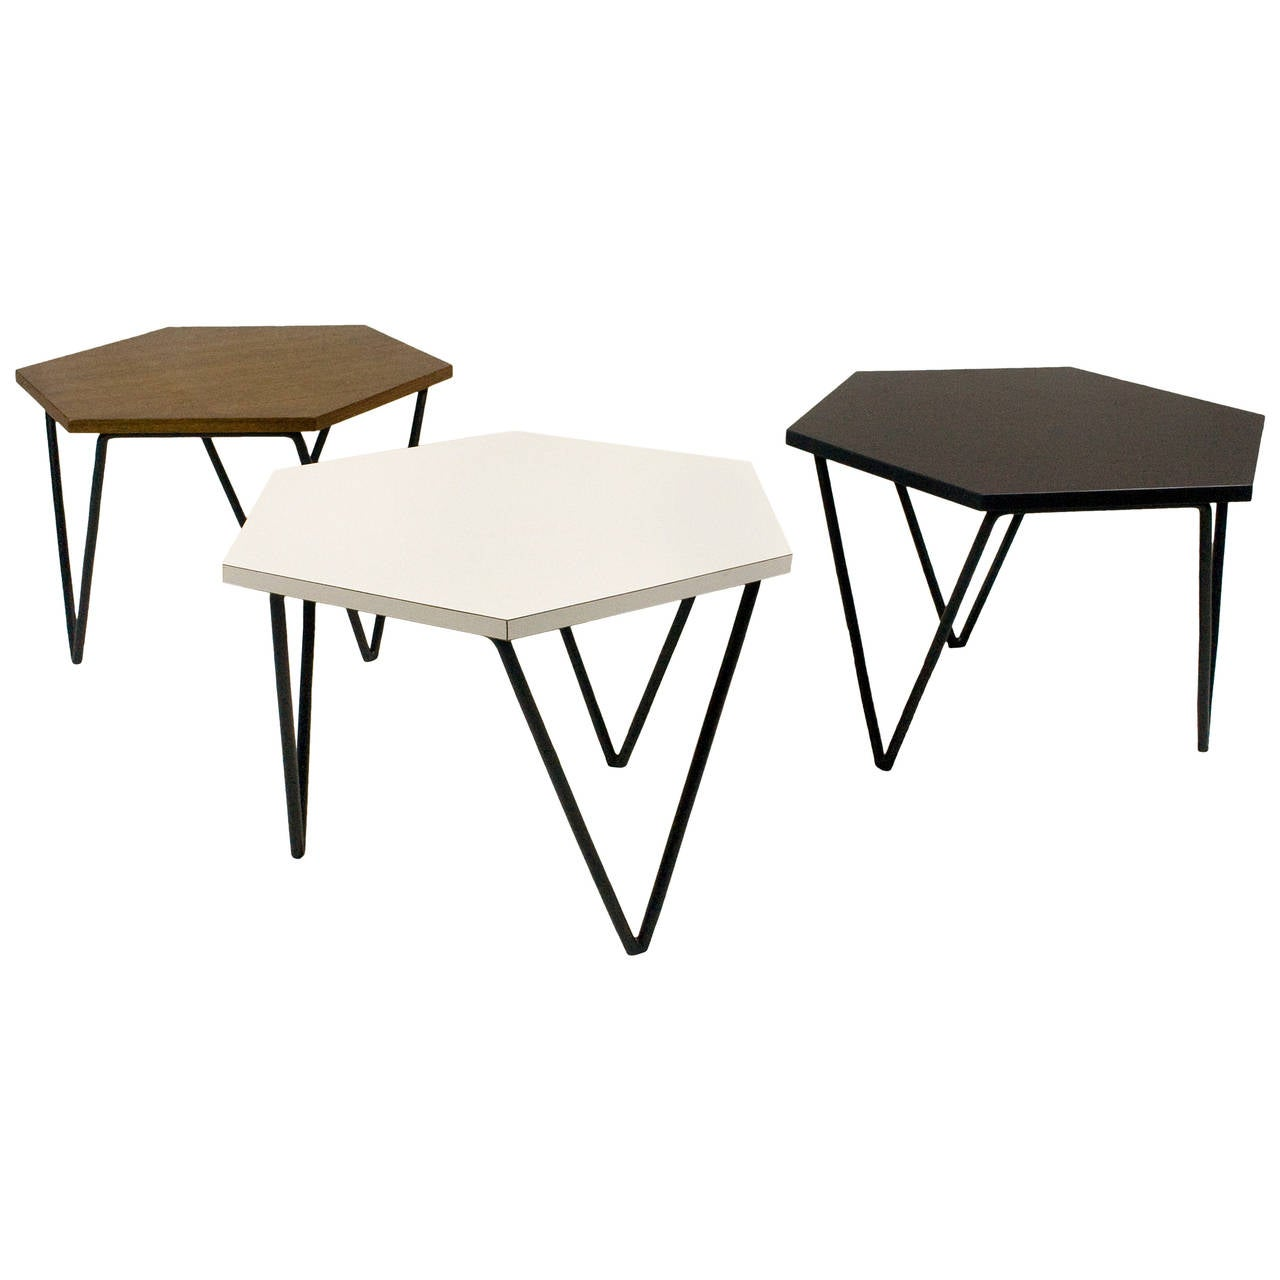 Design Modular Coffee Table series of three gio ponti modular coffee tables circa 1950 italy 1